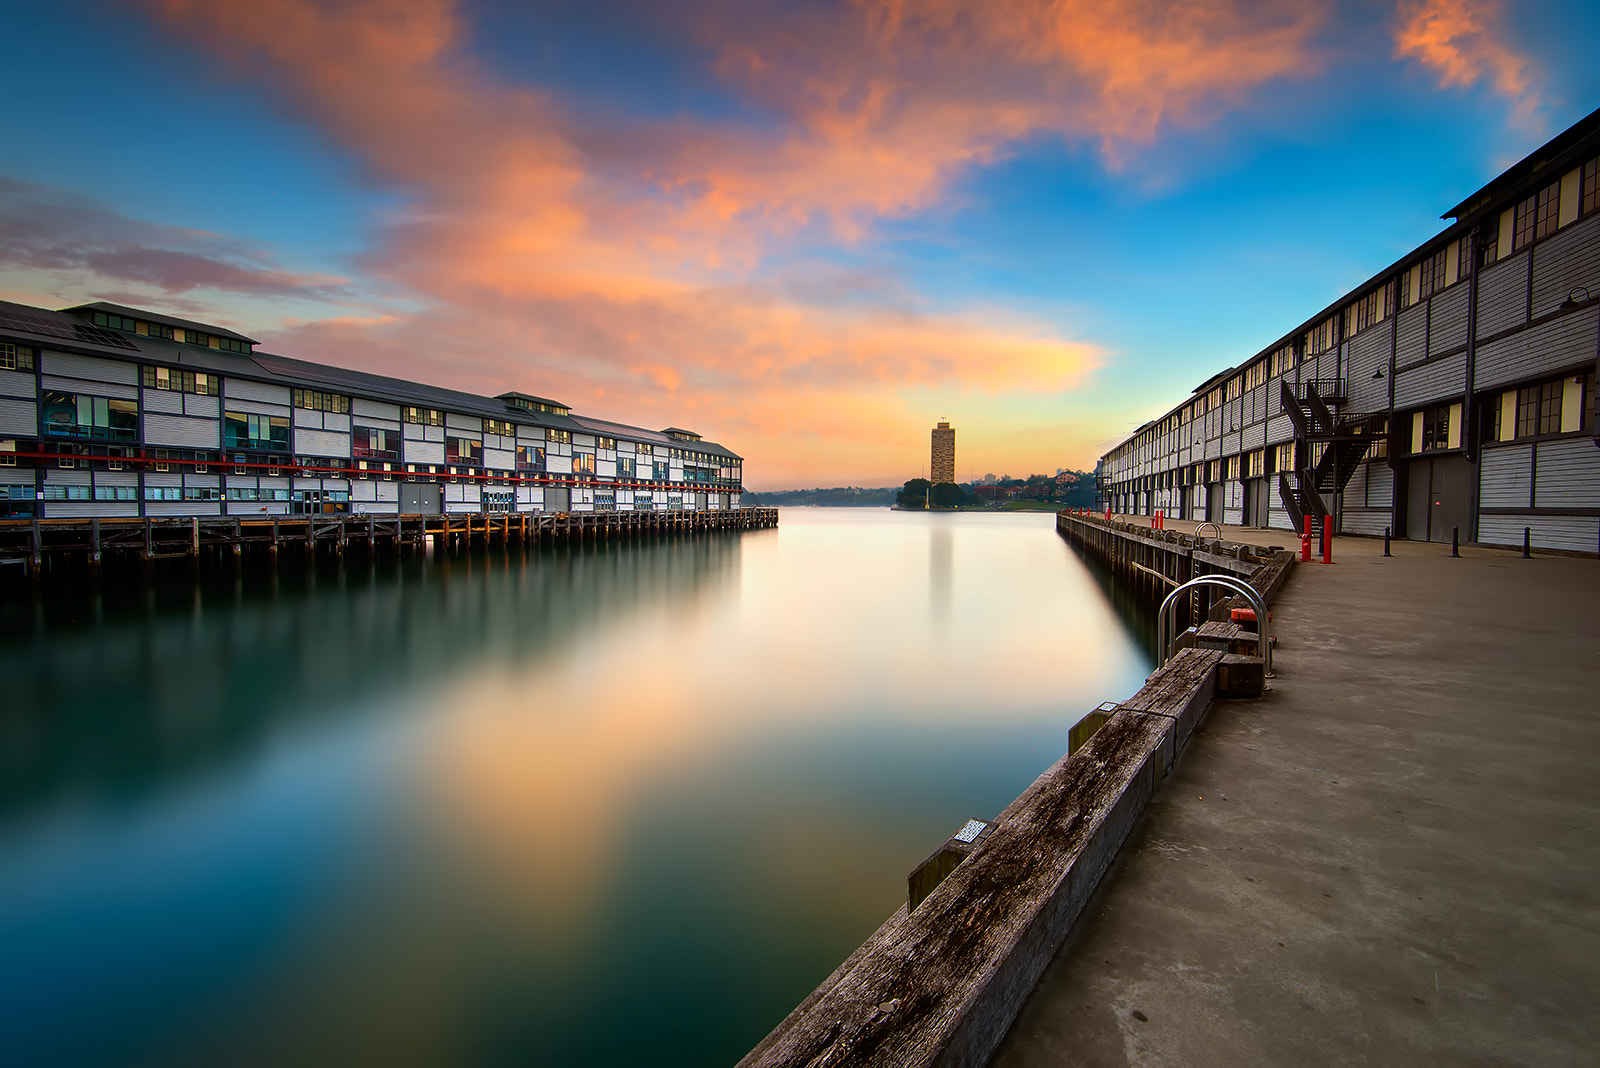 Photograph Pier 2 by Goff Kitsawad on 500px